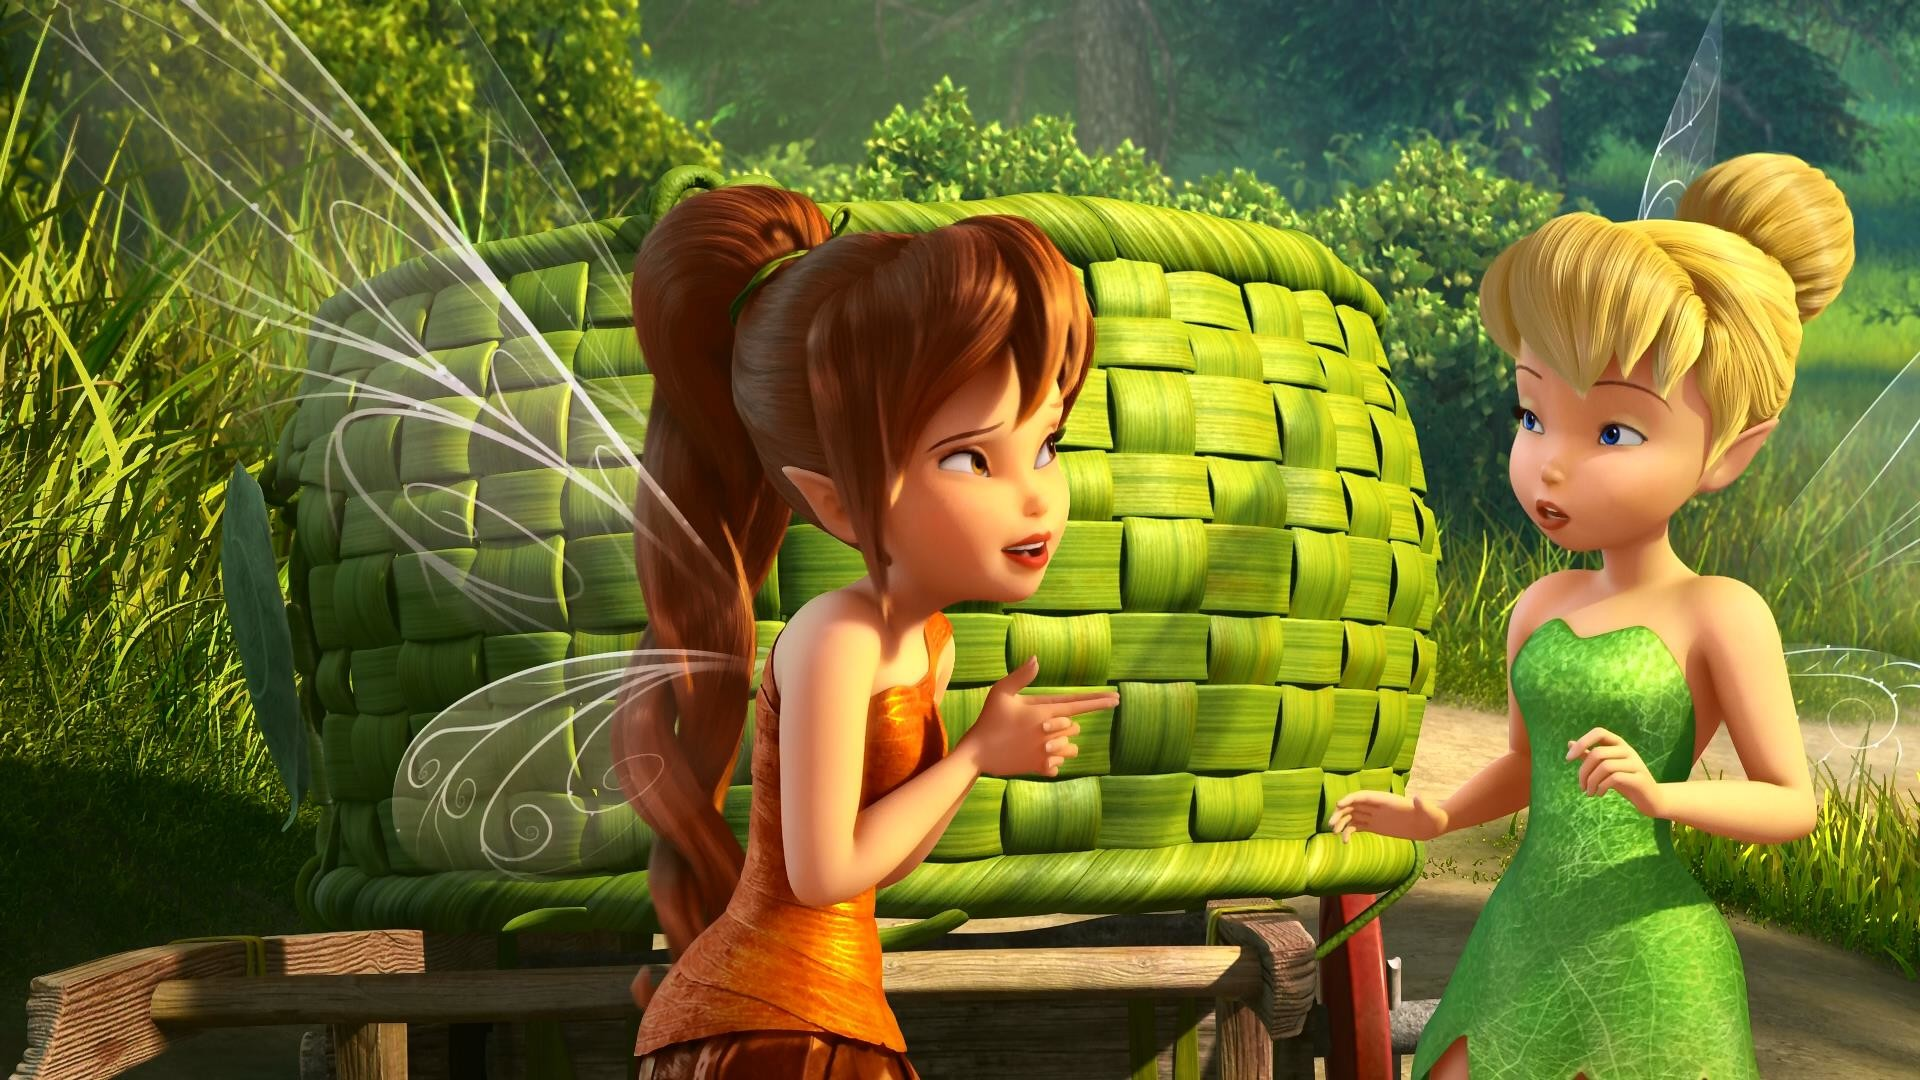 1920x1080 Disney Fairies Fawn images Fawn in 'The Legend of the NeverBeast' HD  wallpaper and background photos